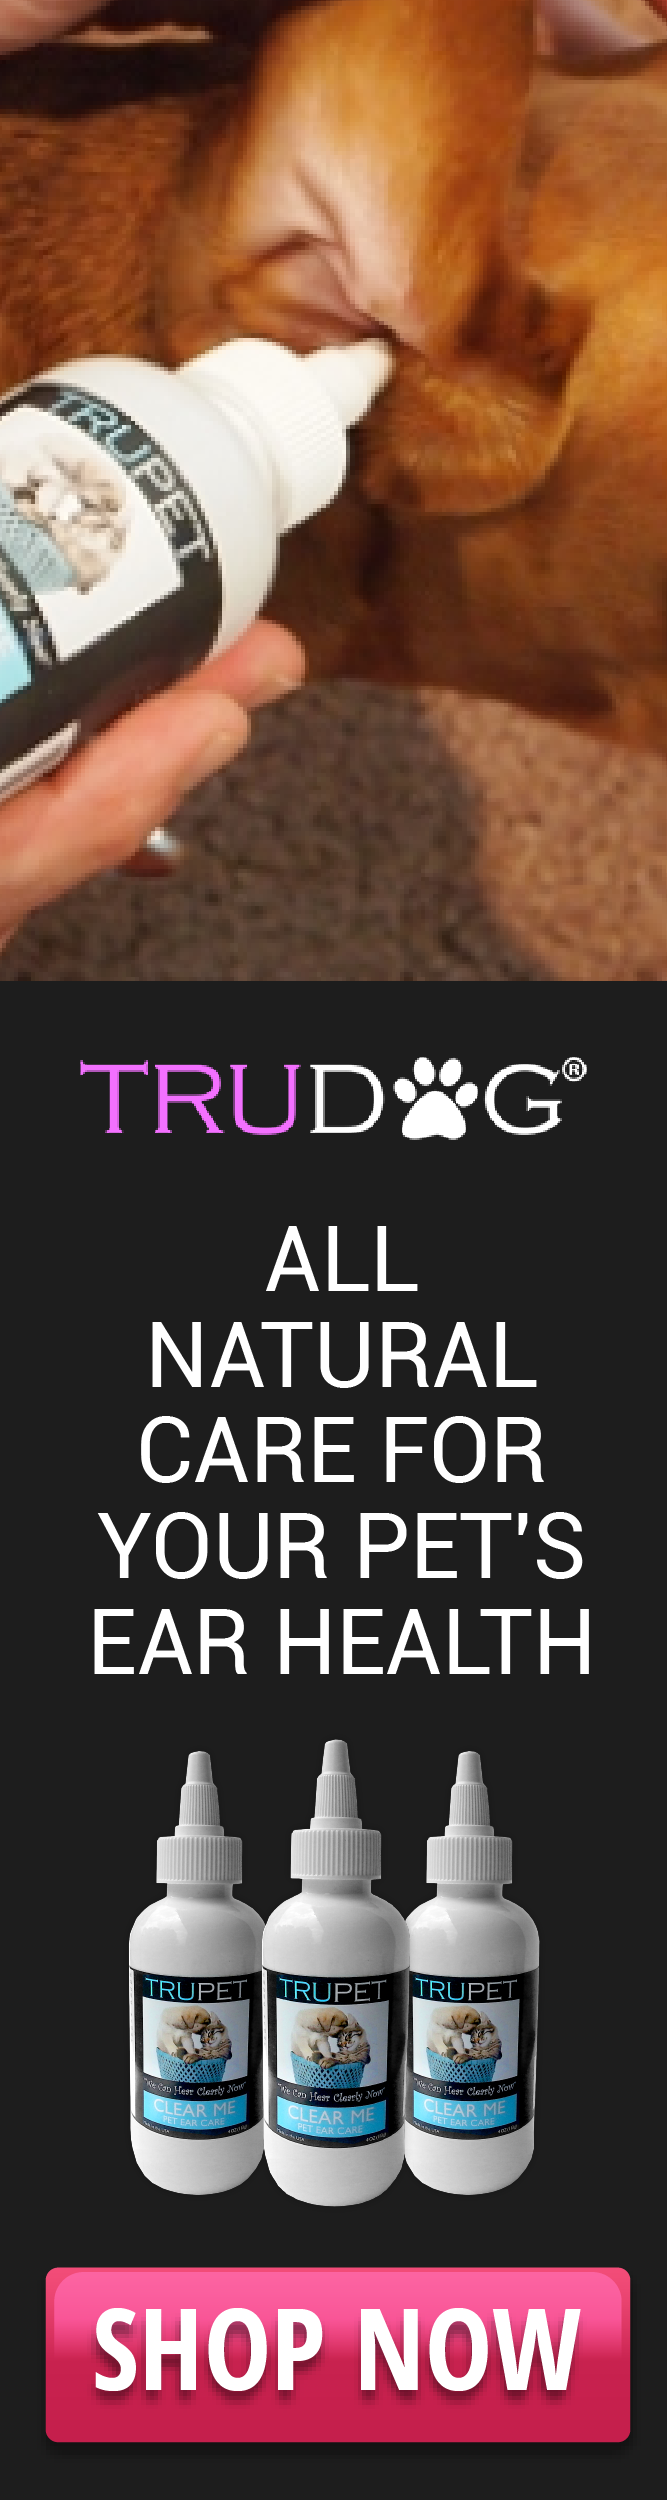 allnatural care for your pets health